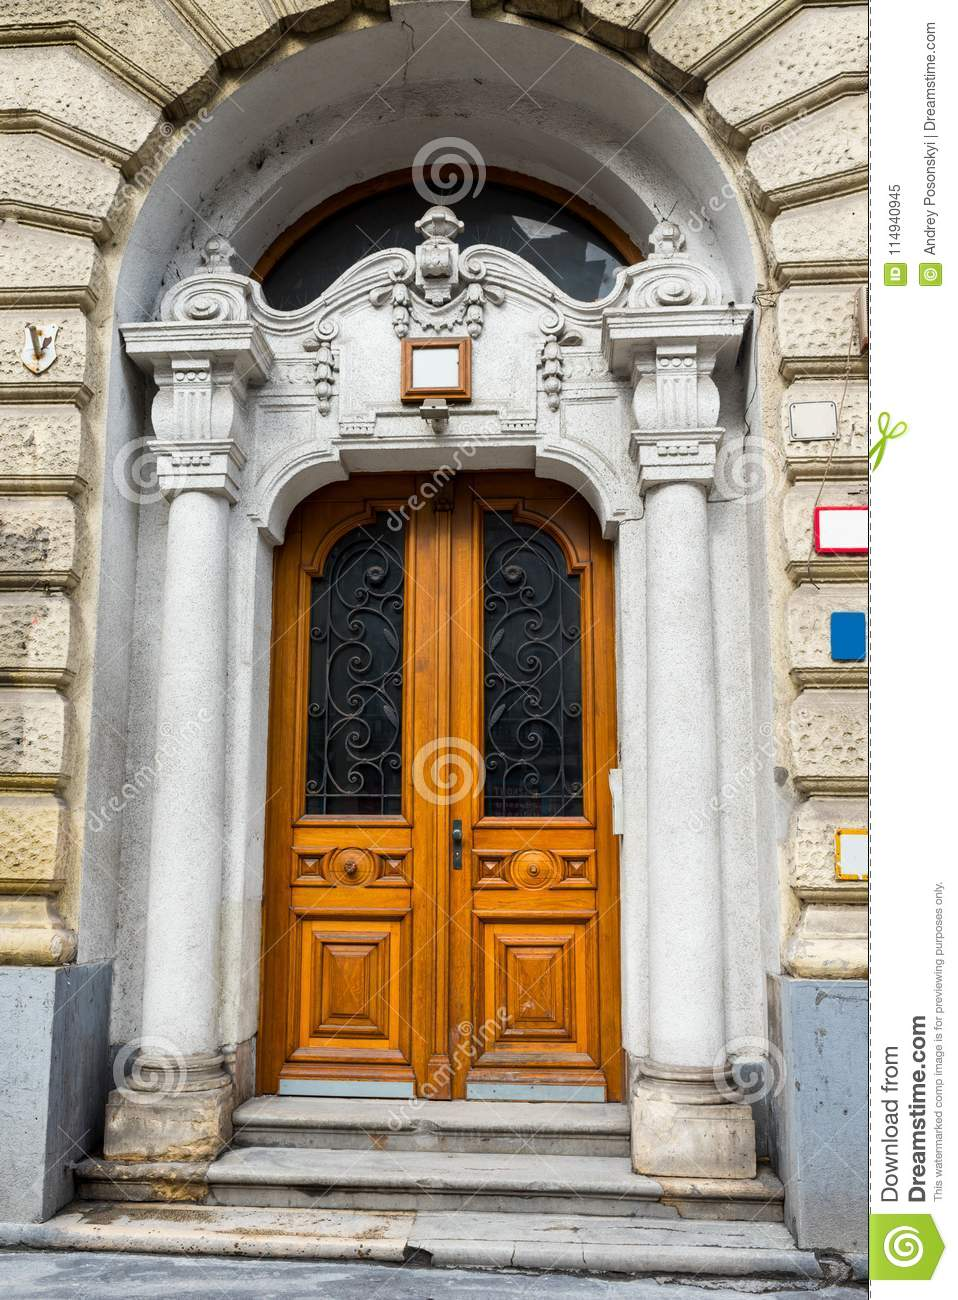 Doors In The Old Architecture, Exit Or Entrance